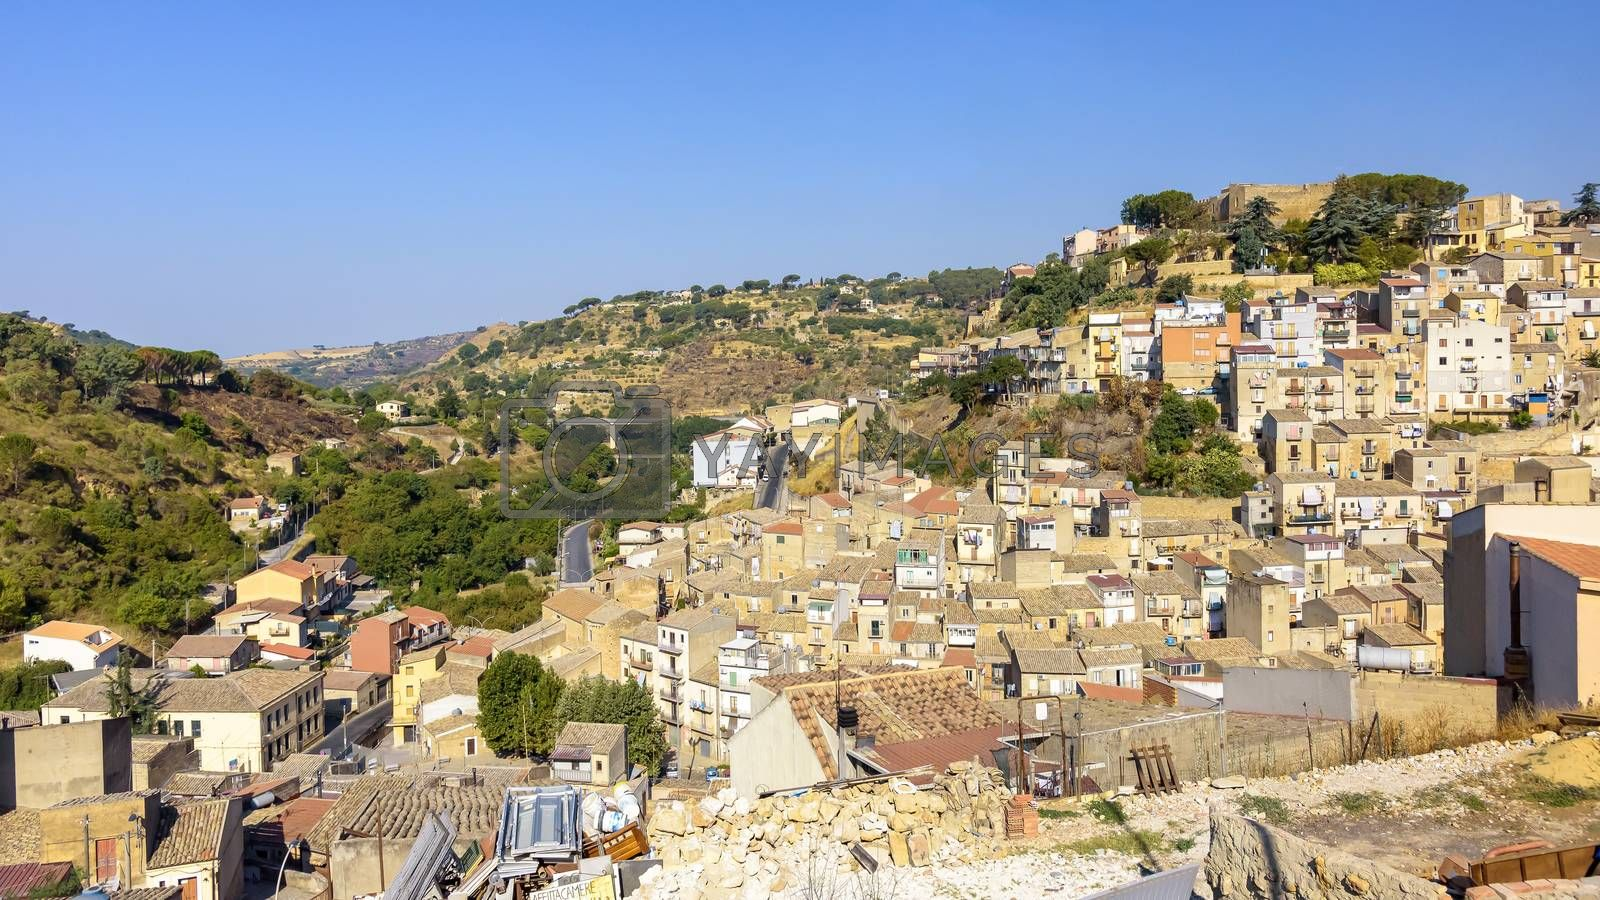 Royalty free image of View of Piazza Armerina town on Sicily by mkos83